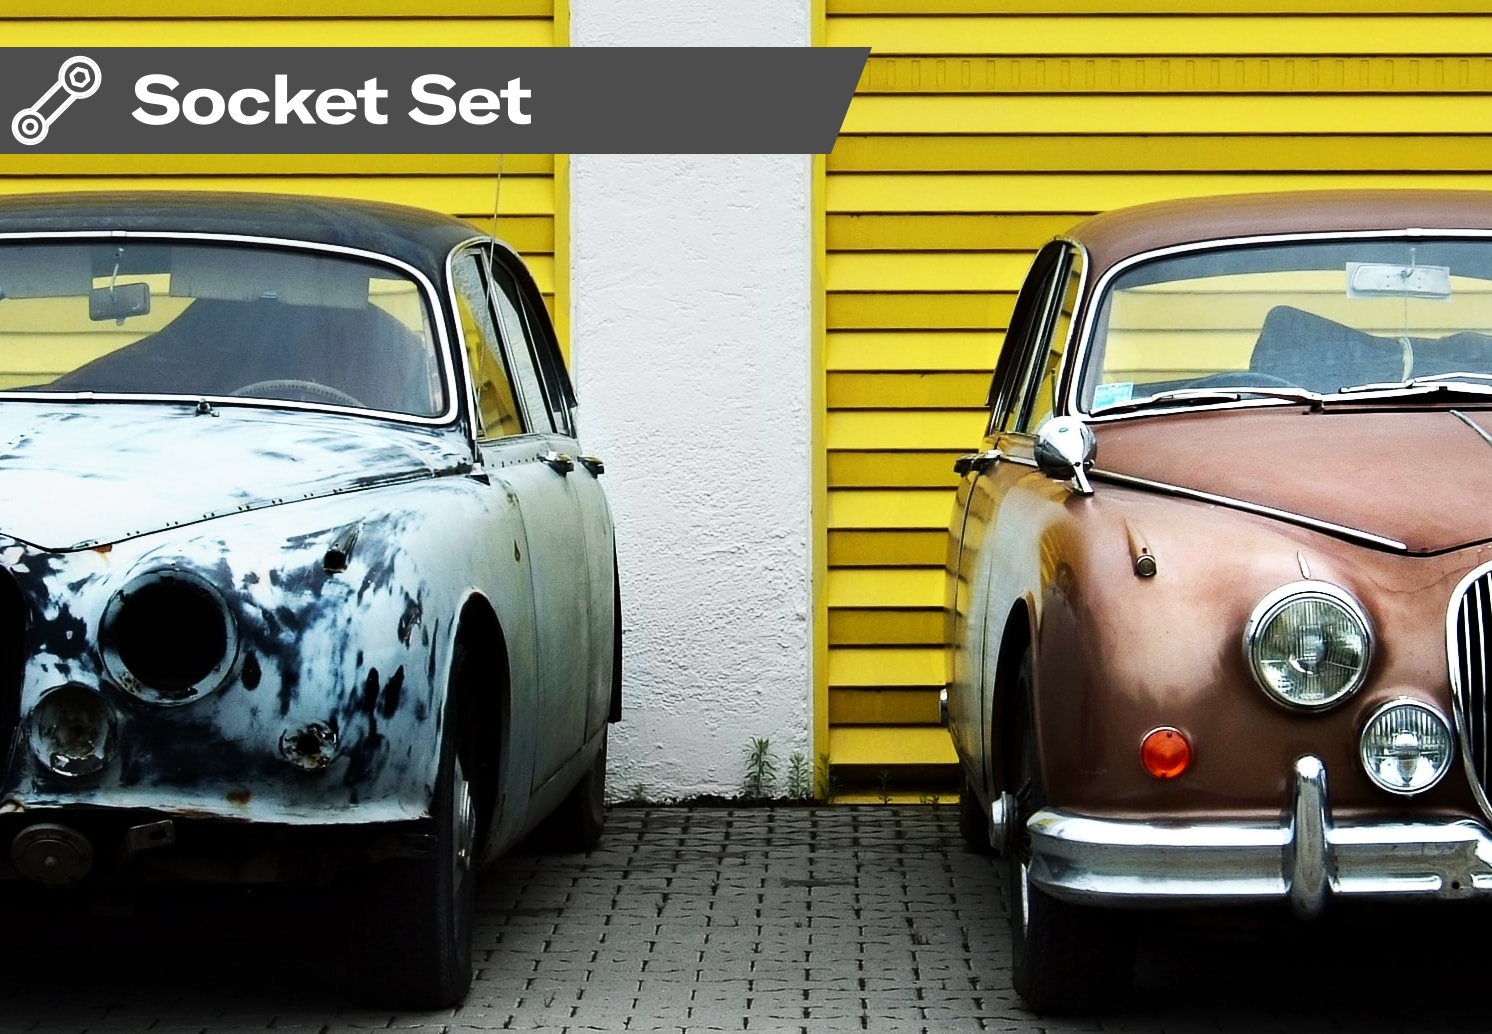 Socket Set: How to decide whether to fix-up or restore a car